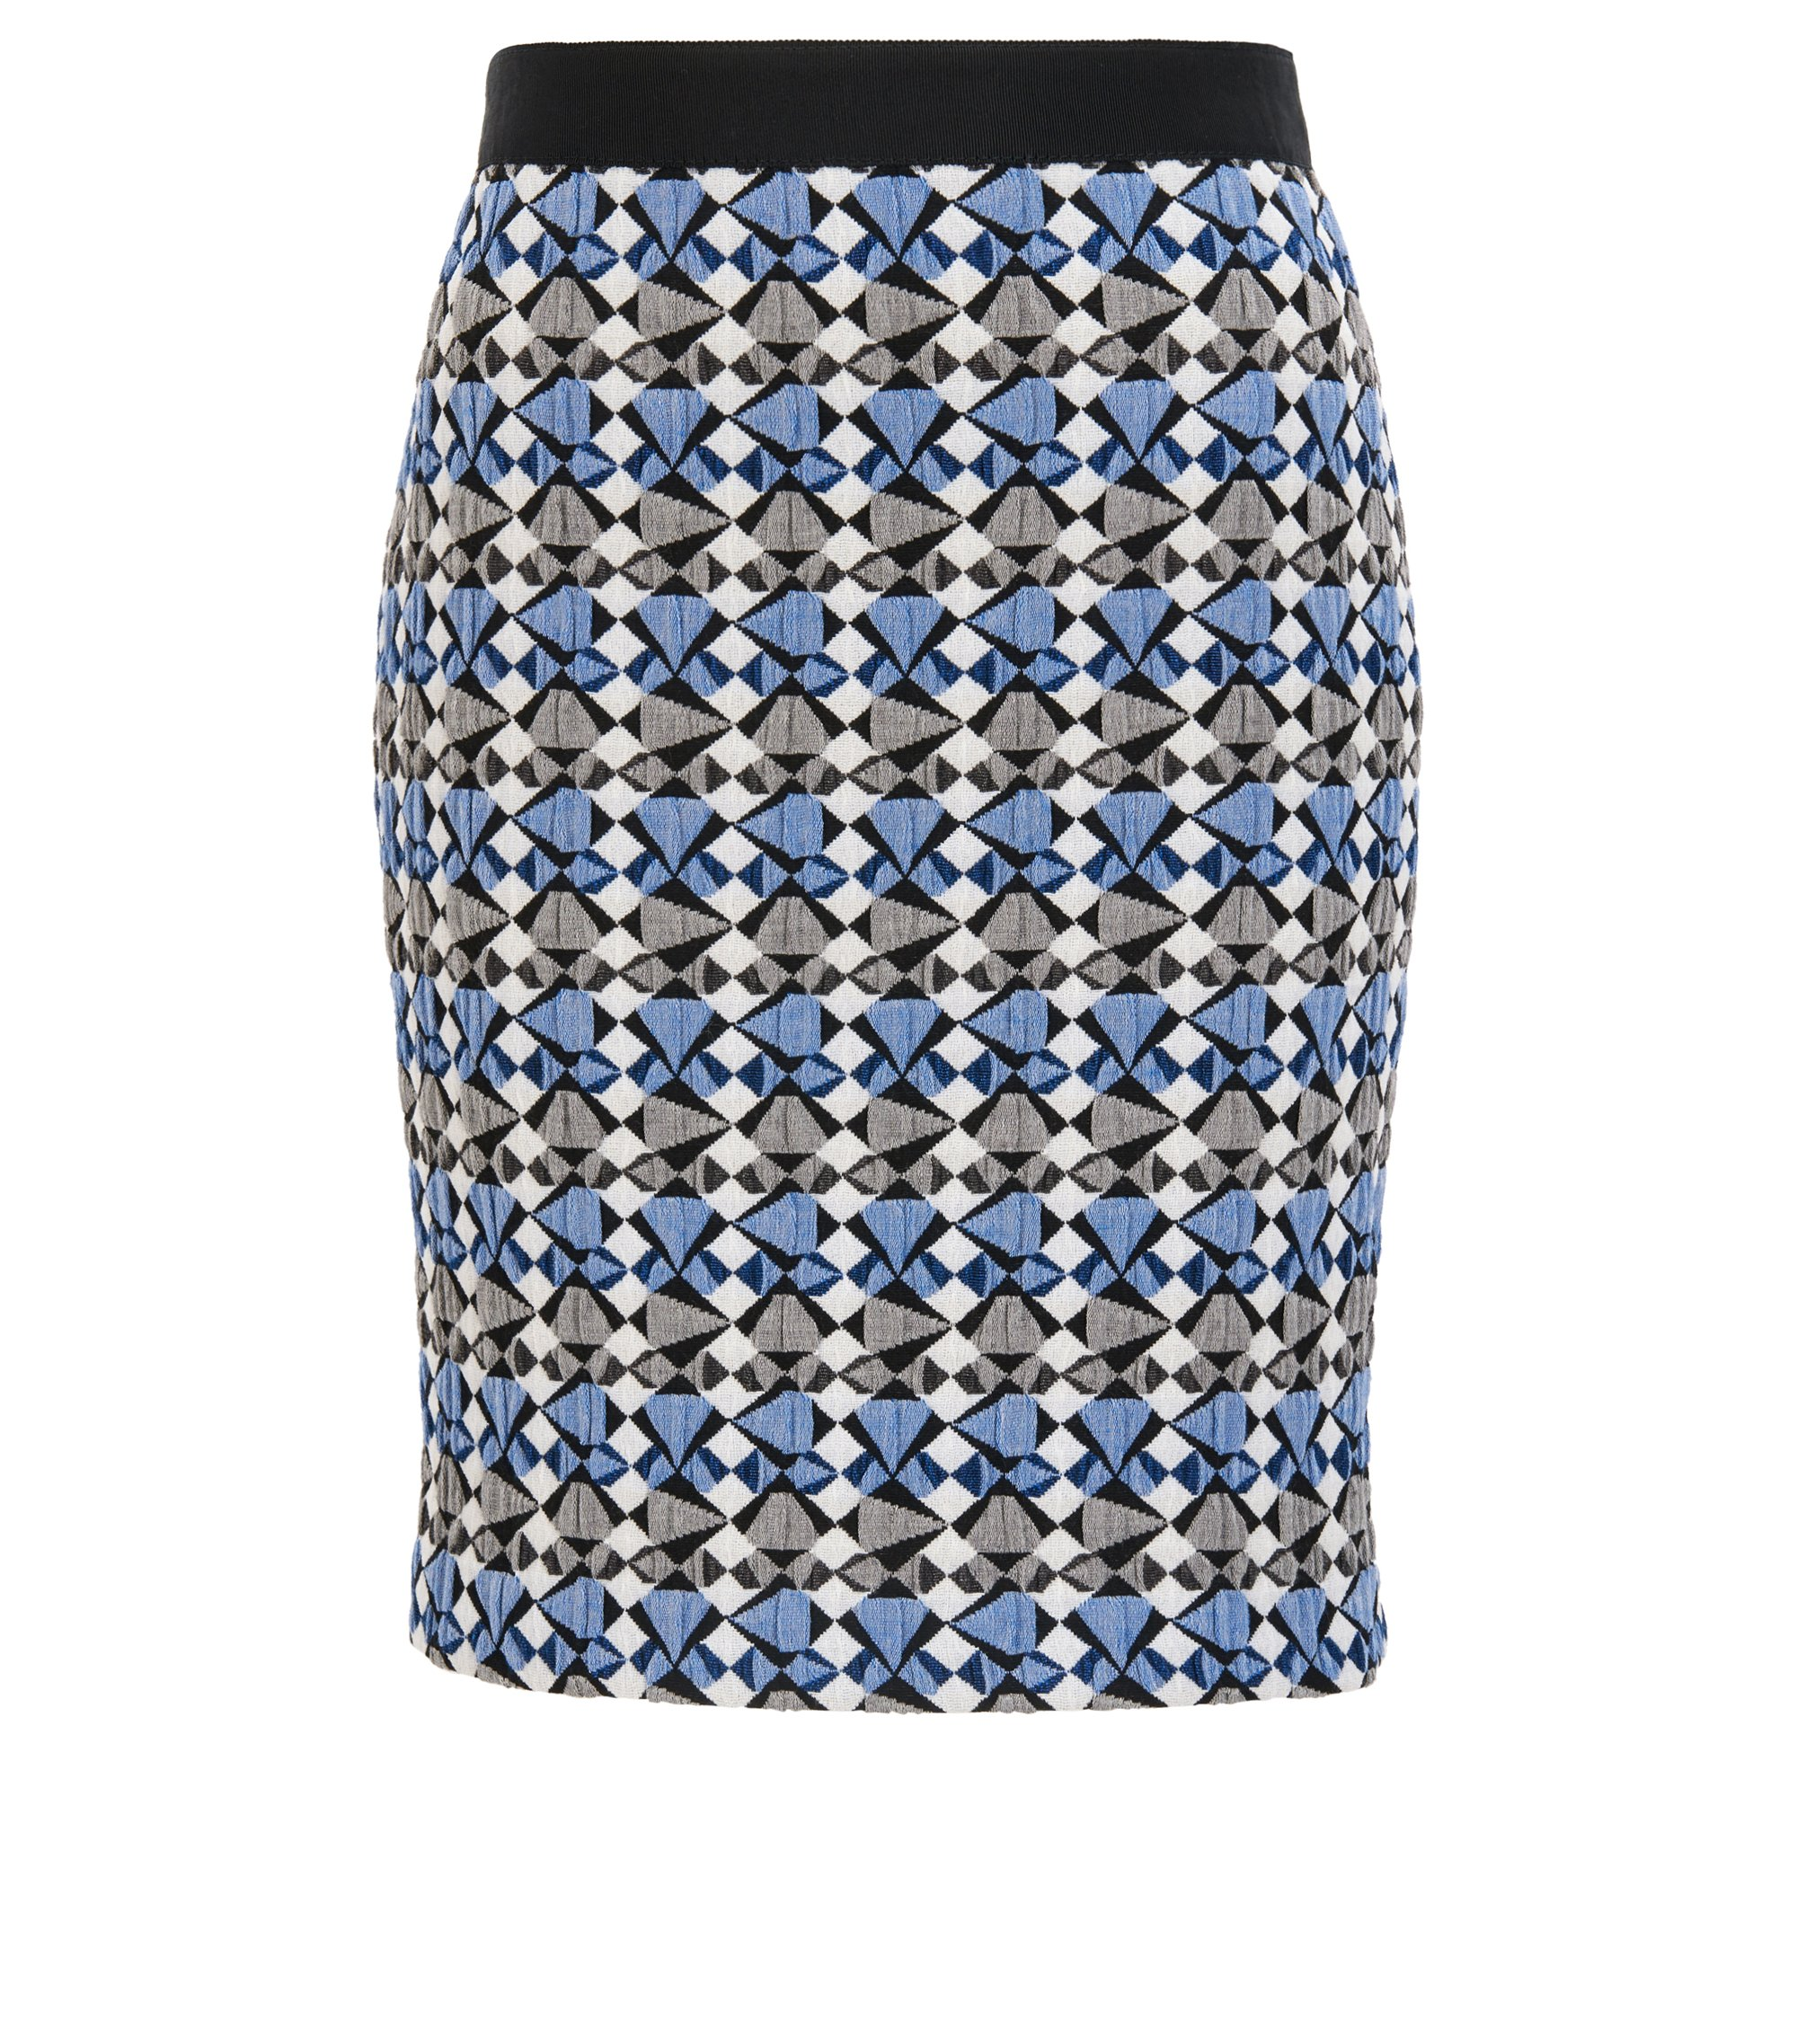 Pencil skirt in multicoloured stretch jacquard, Patterned